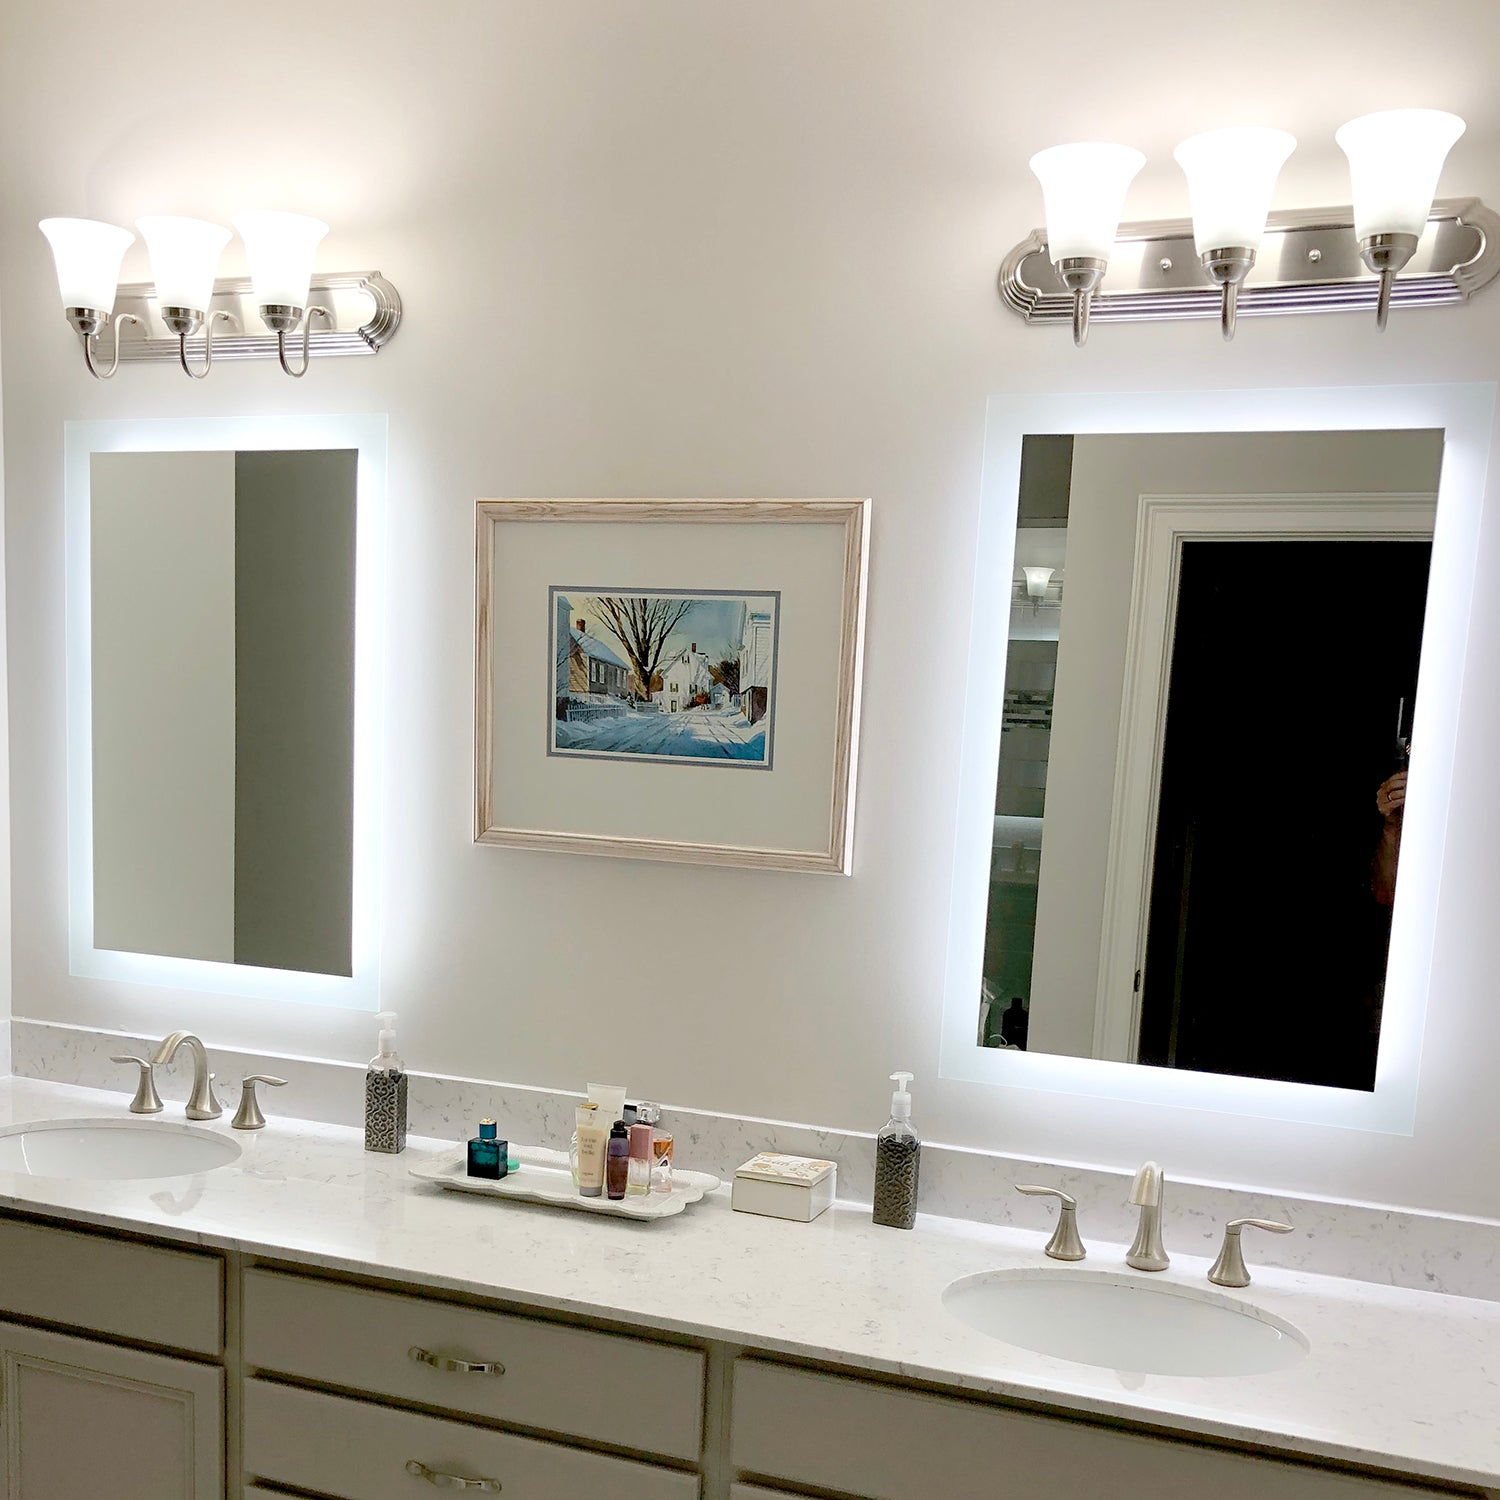 Led Side Lighted Bathroom Vanity Mirror 20 Wide X 28 Tall Wall Mounted Oval Commercial Grade Tools Home Improvement Bathroom Mirrors